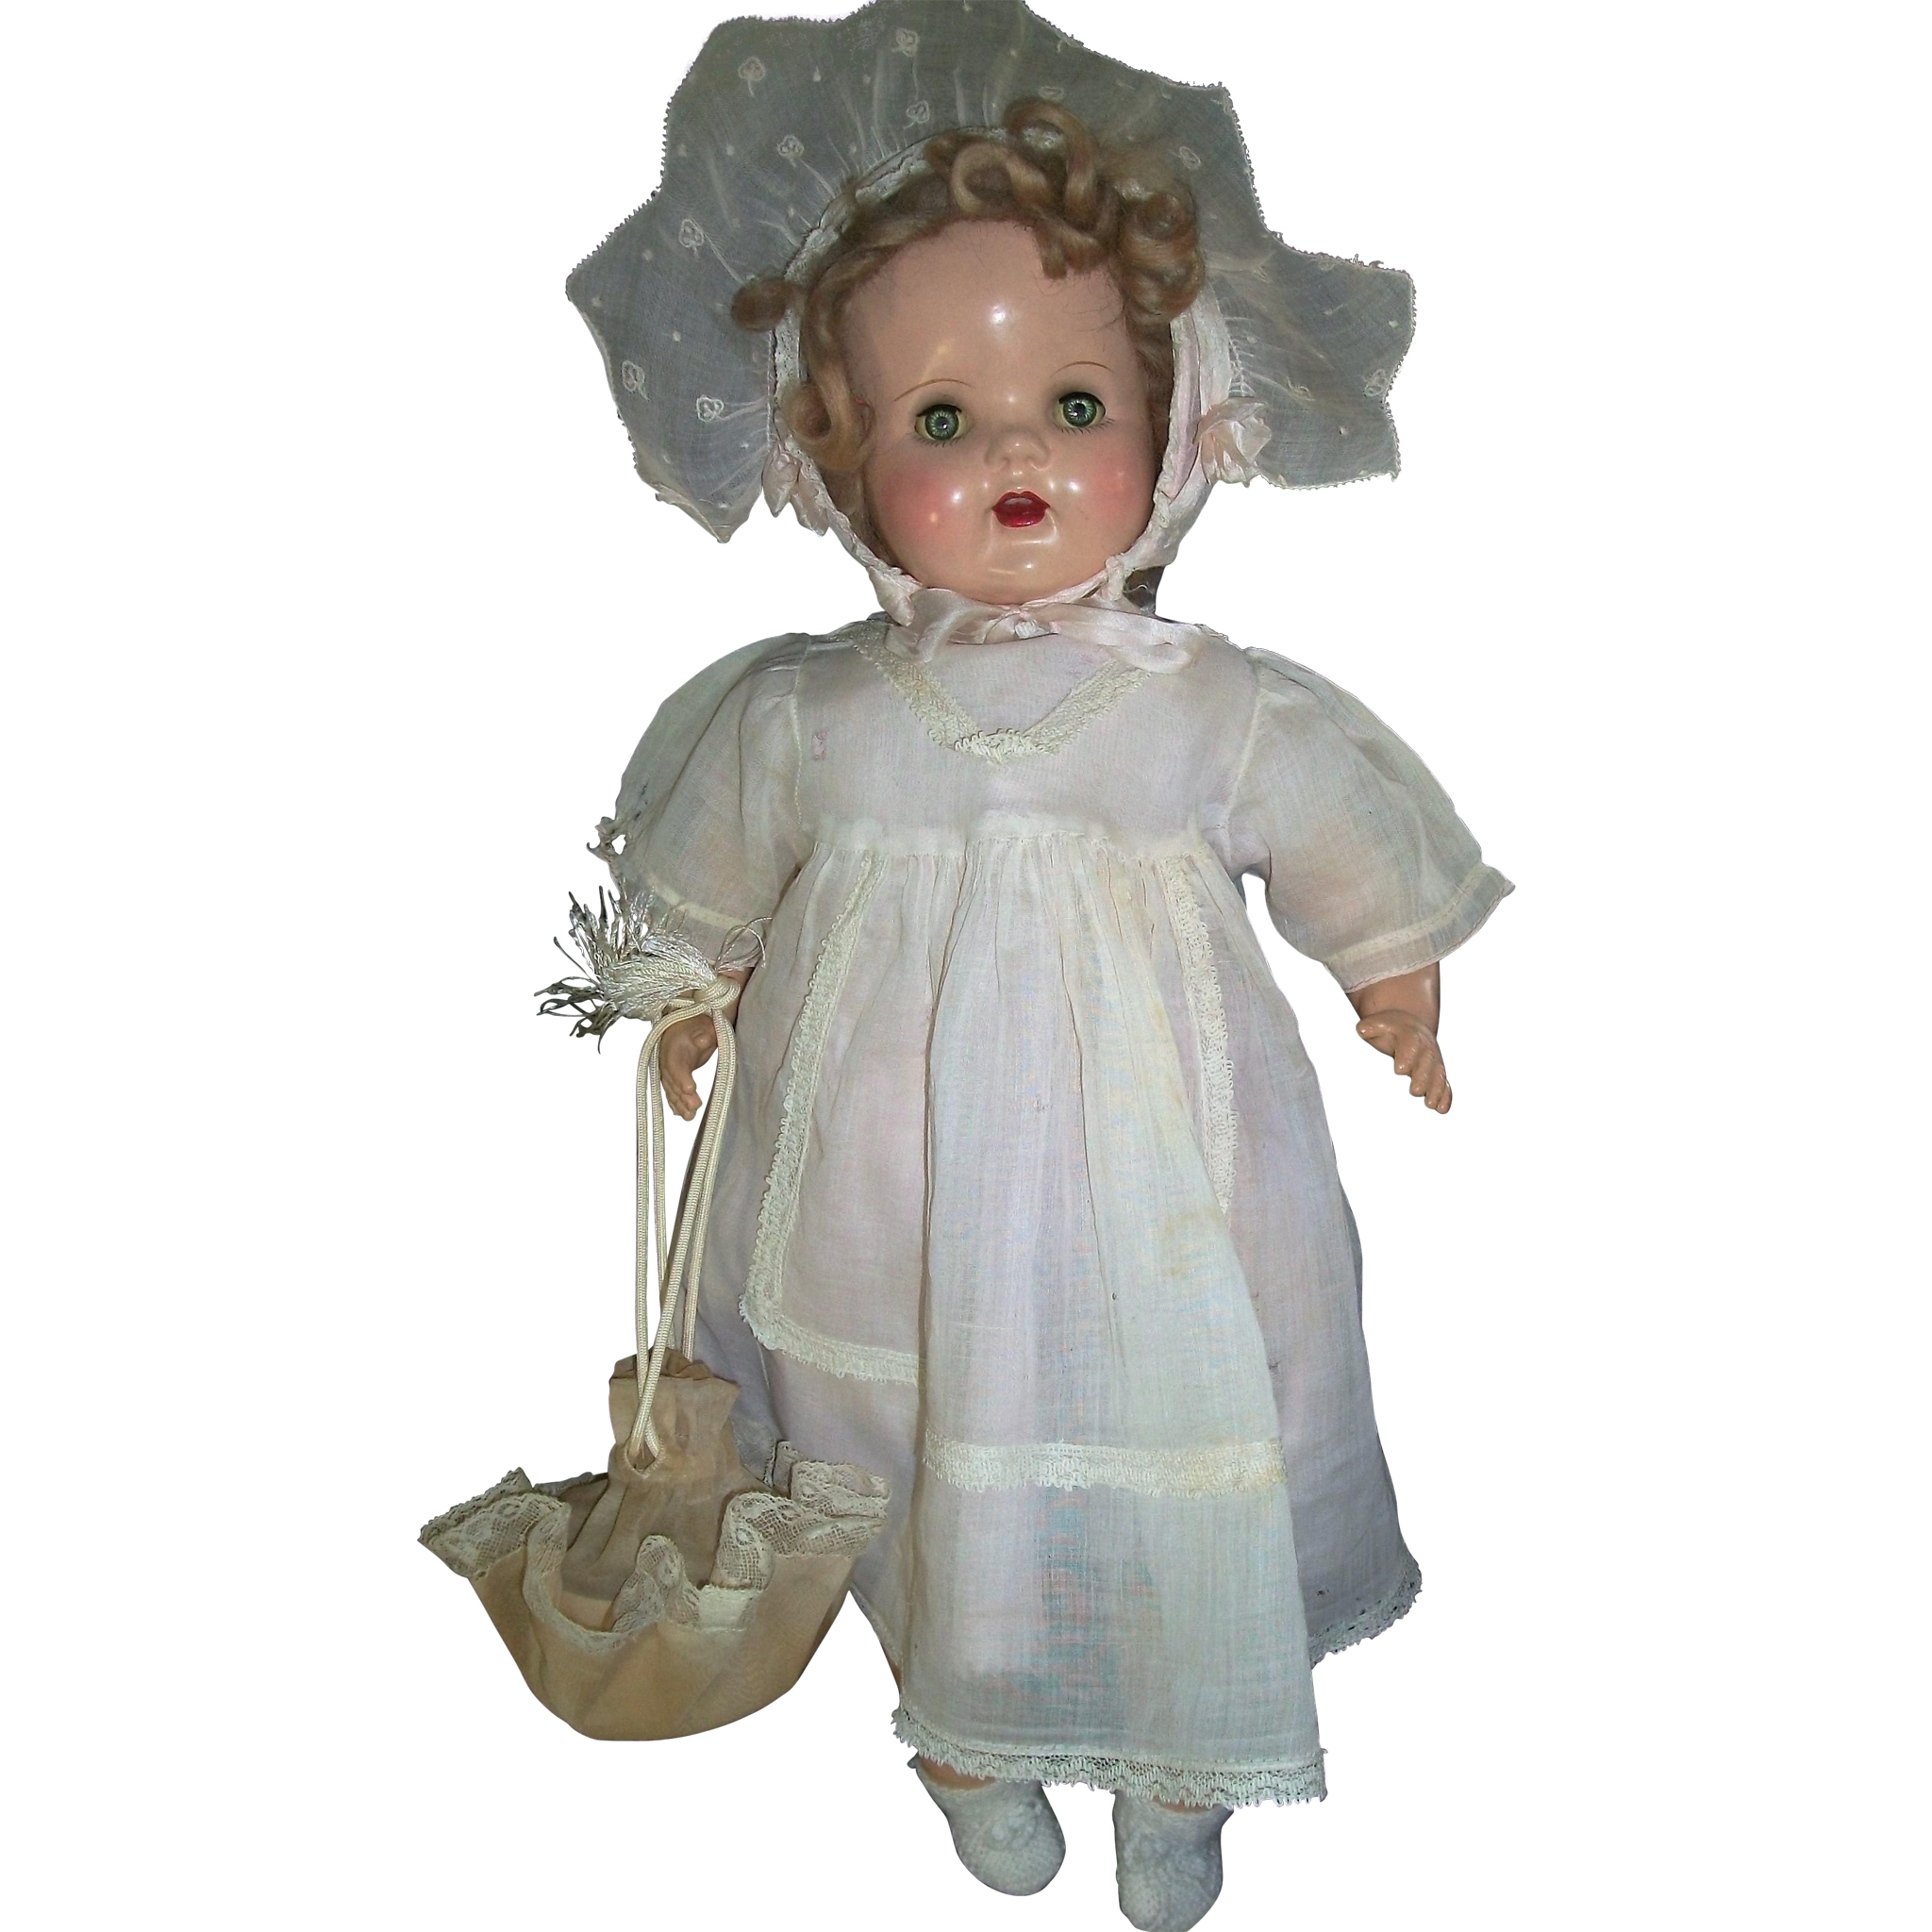 Adorable Vintage Doll Draw String Purse Joys Of